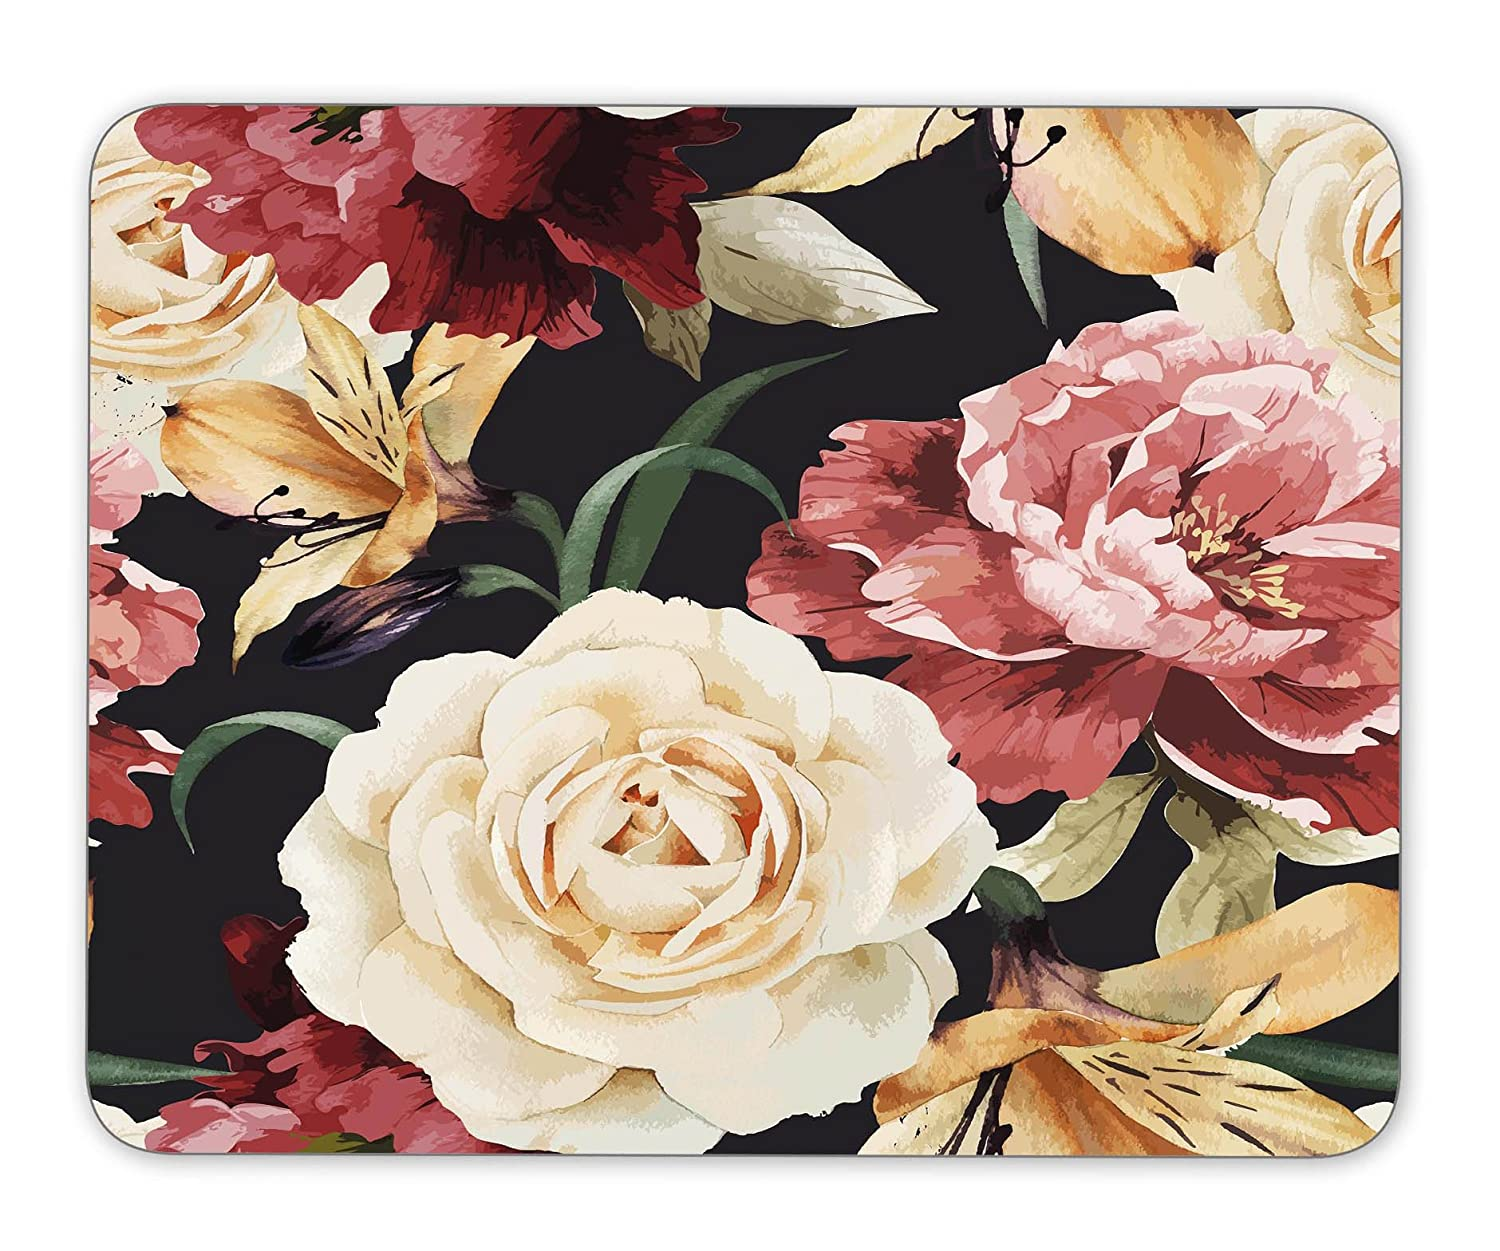 Seamless floral pattern with roses, watercolor Mouse Pad Office Mouse Pad Gaming Mouse Pad Mouse Mat MousePad Non-slip rubber backing